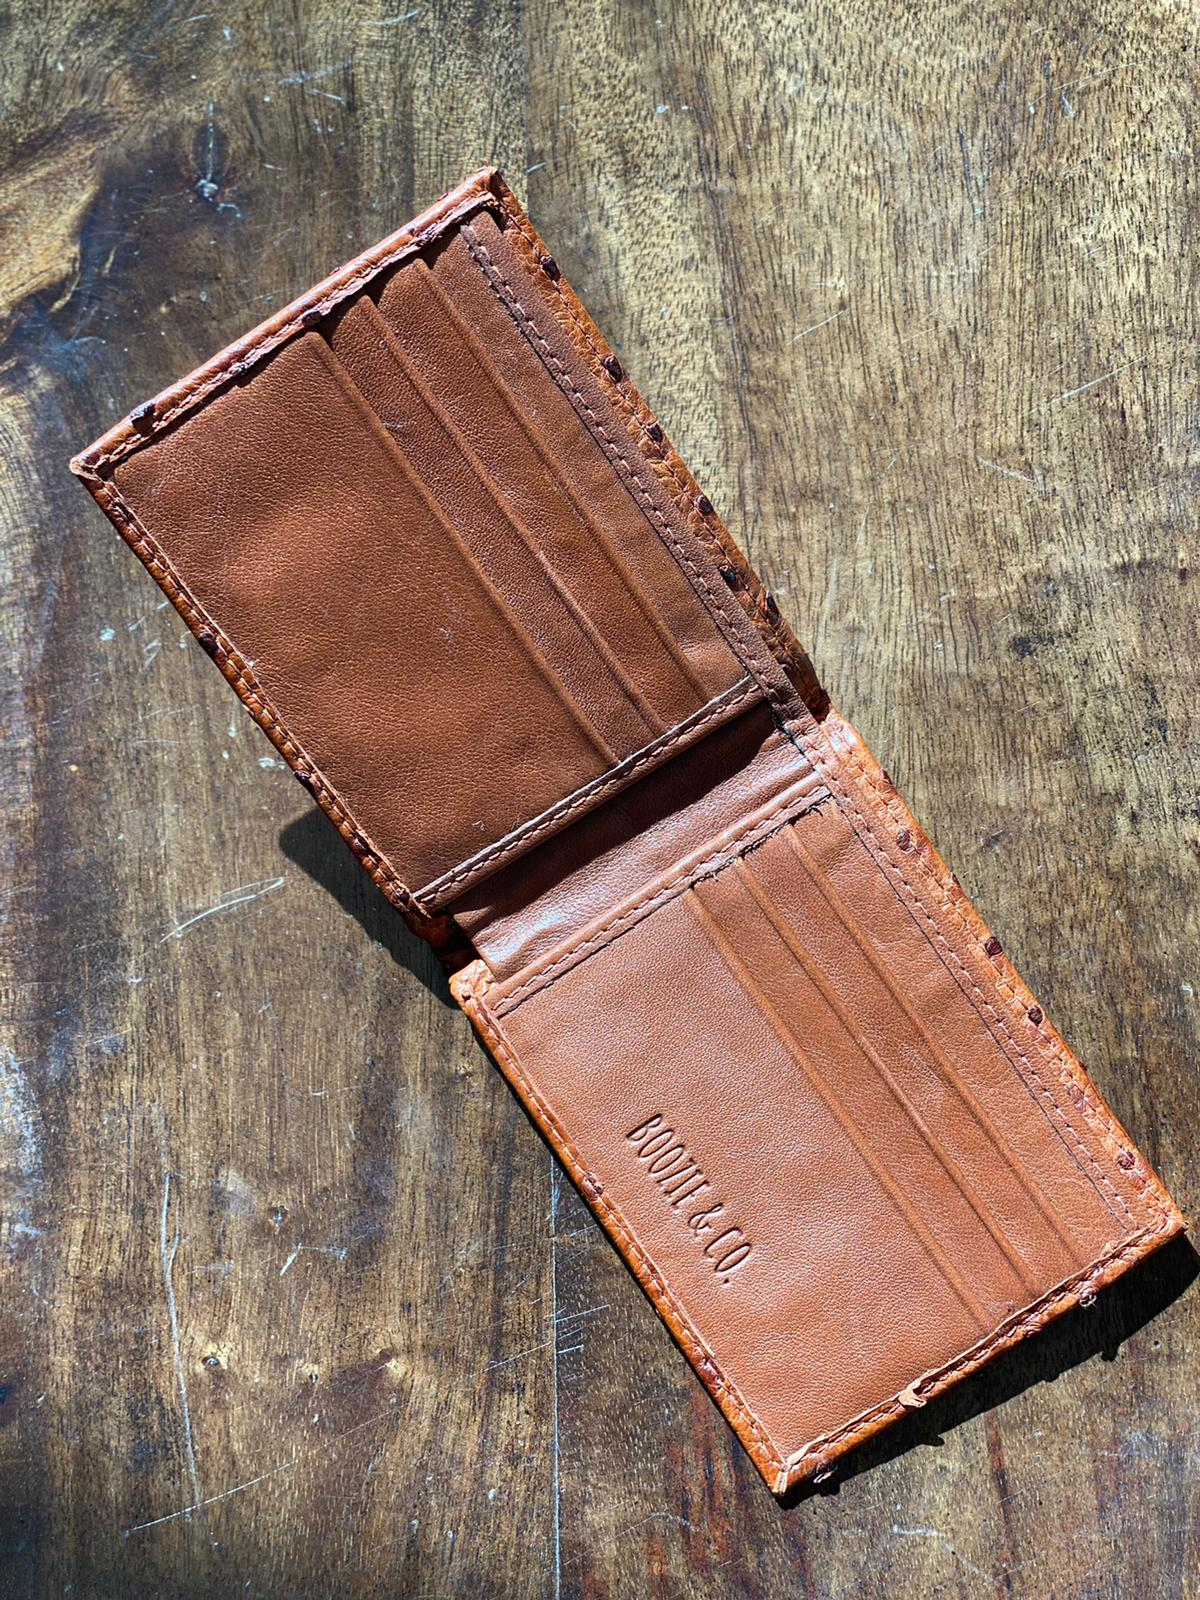 The Glades Gator & Ostrich Wallet